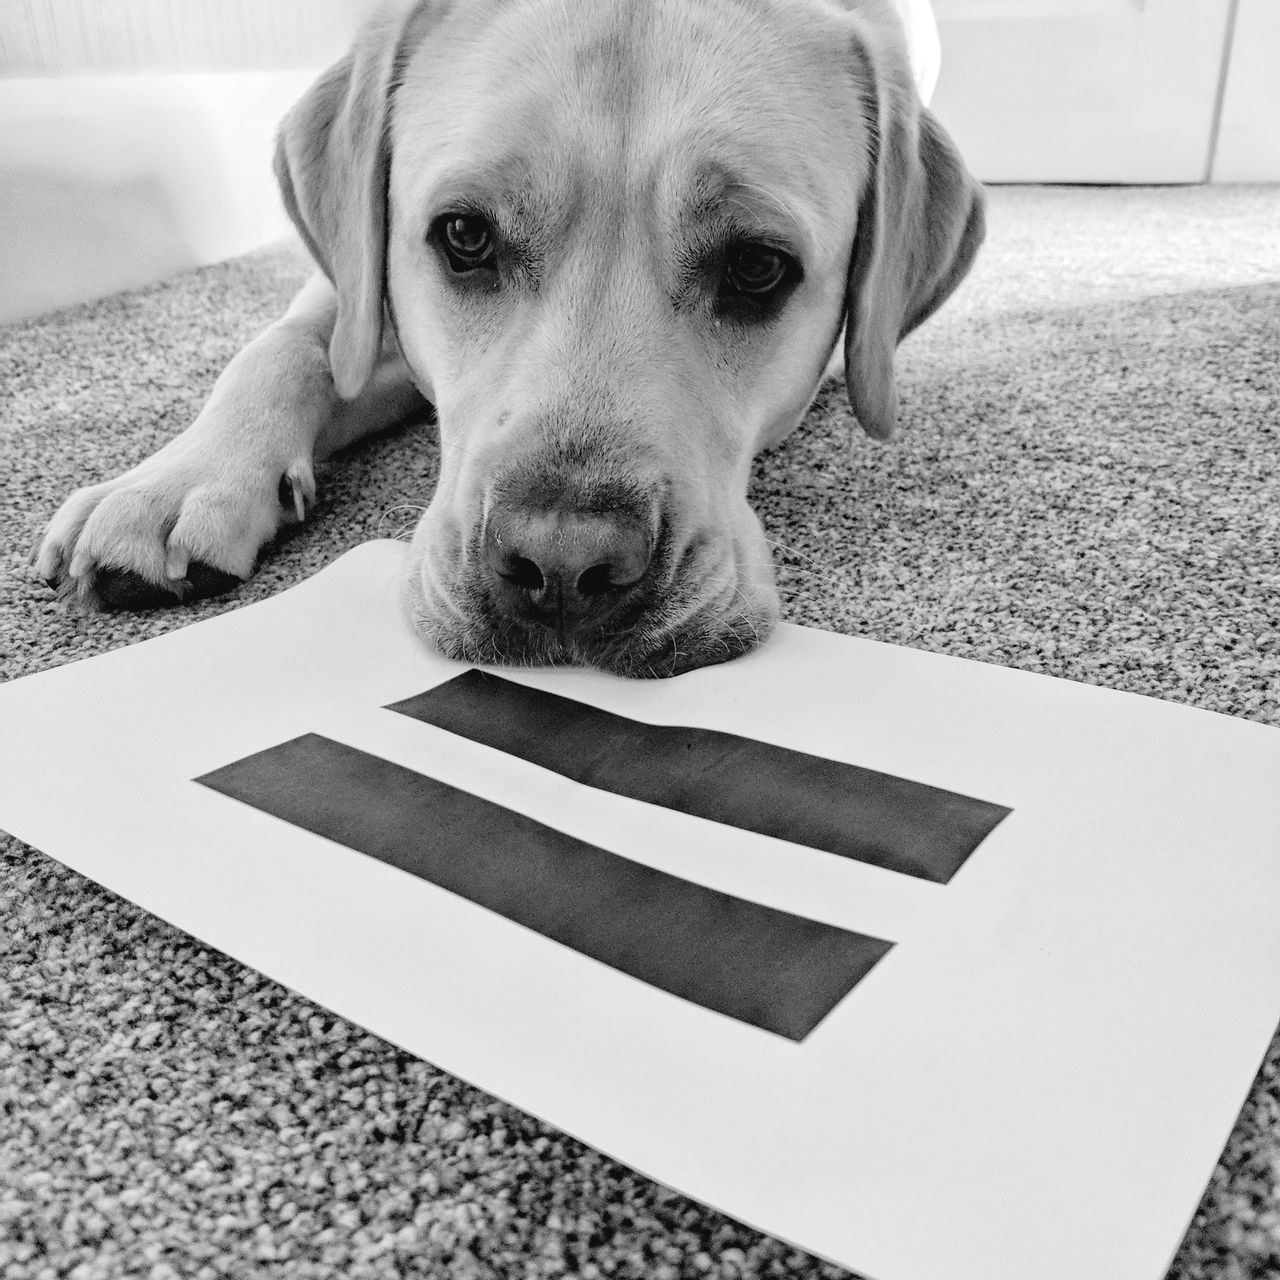 EyeEm Selects Dog Pets One Animal Domestic Animals Animal Indoors  Looking At Camera Animal Themes Mammal Portrait Puppy Day No People Close-up Equality💕 Equalpay Equal Pay Day